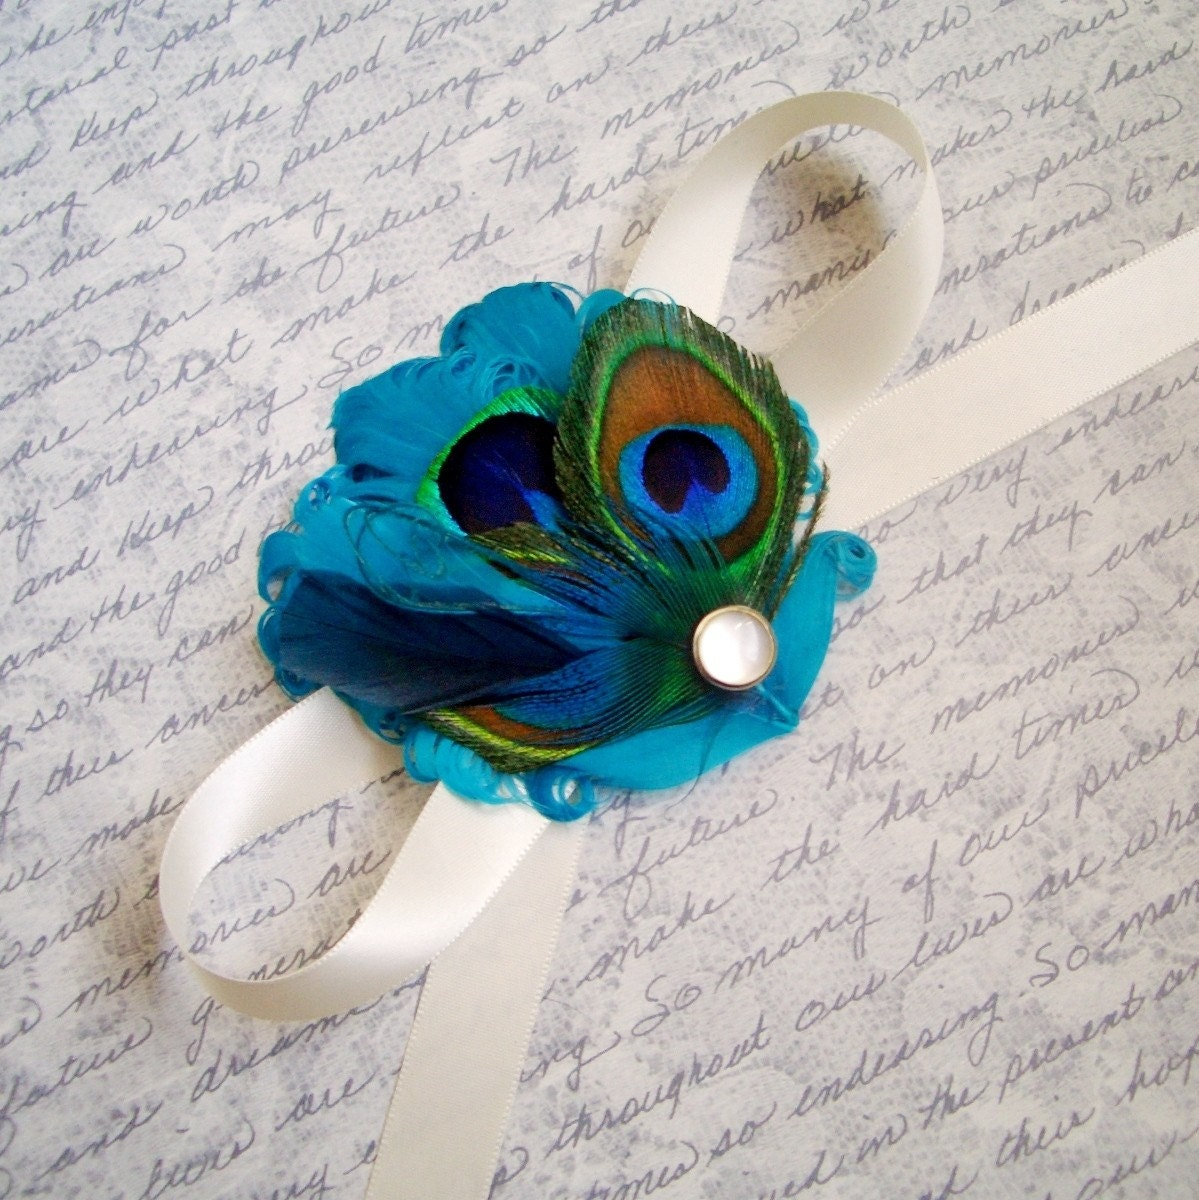 TUSCANY - Turquoise and Peacock Wrist Corsage - Made to Order